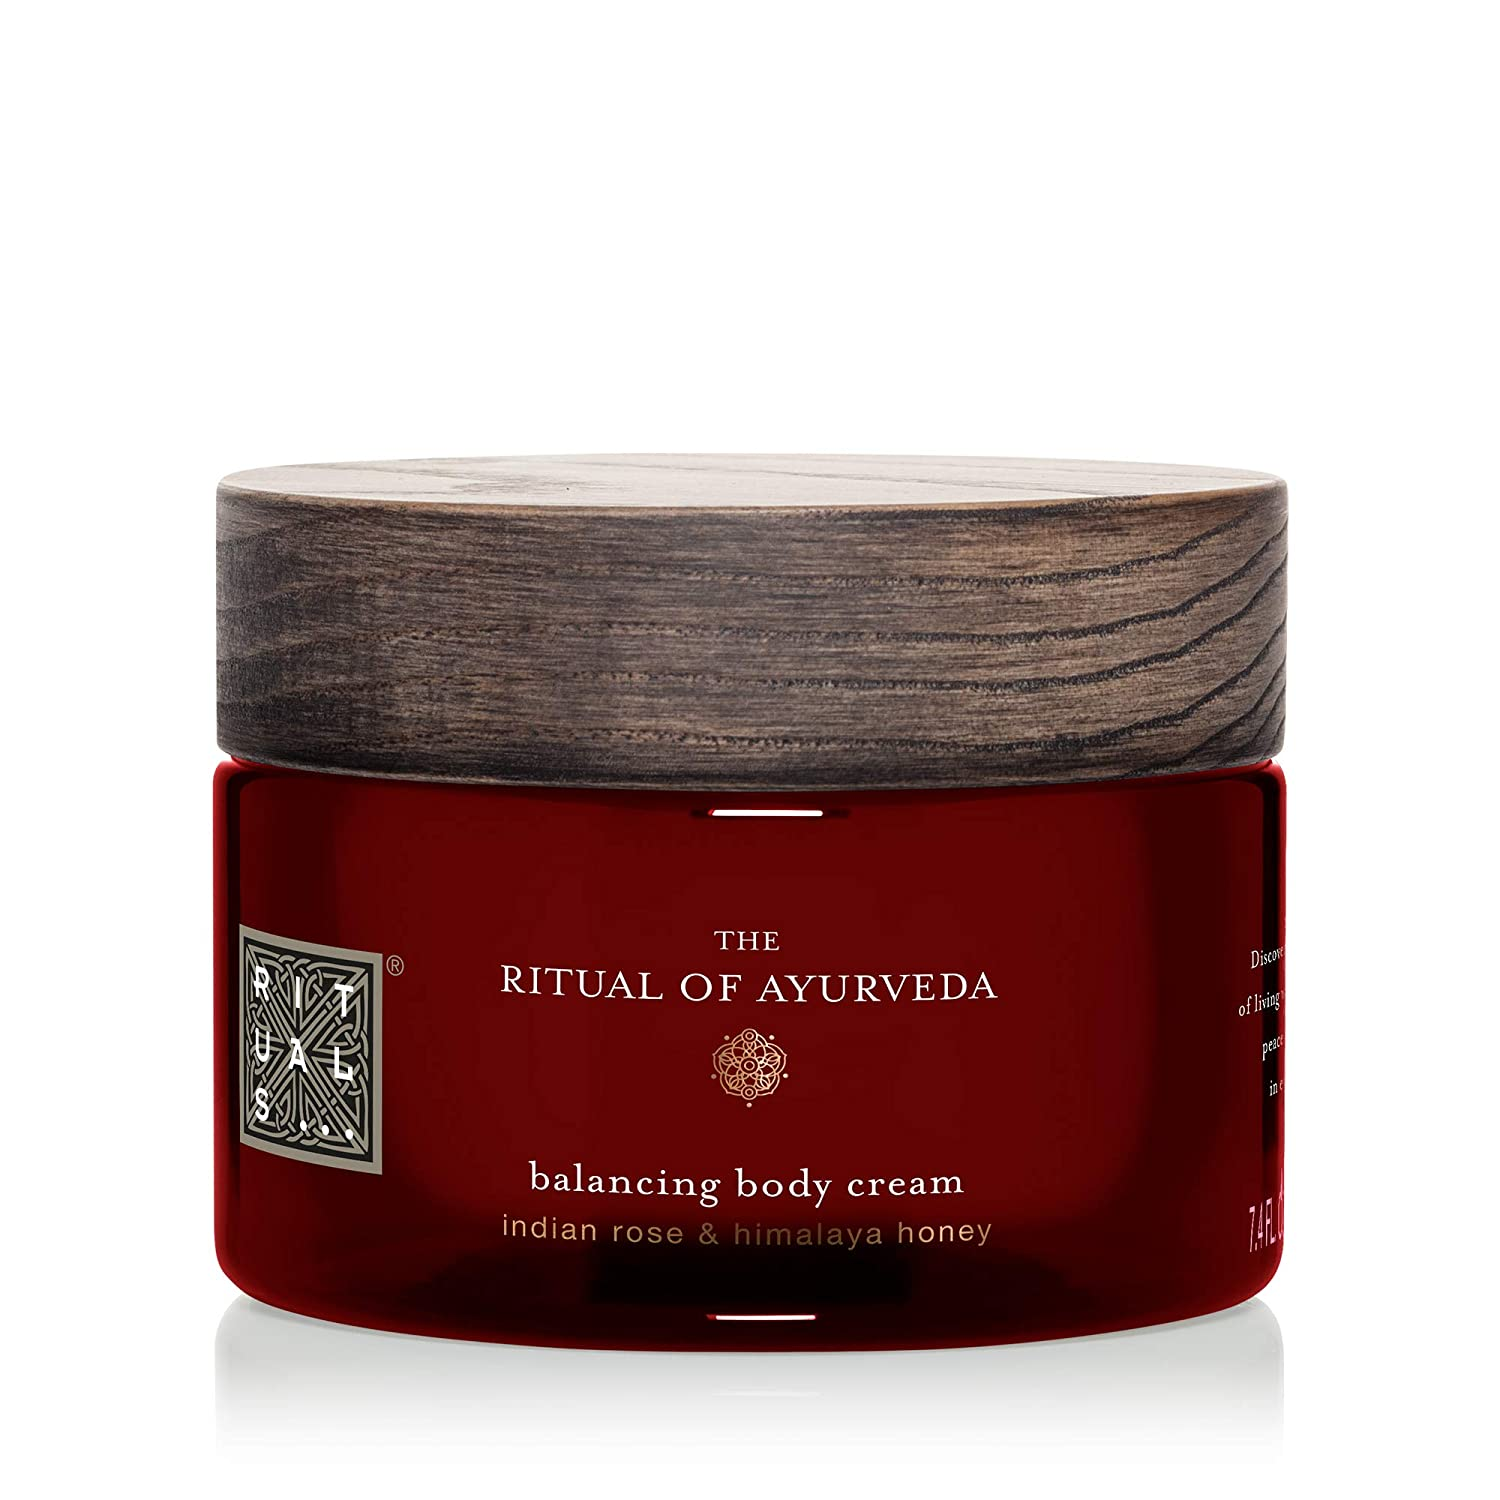 RITUALS The Ritual of Ayurveda Body Cream, 220 ml